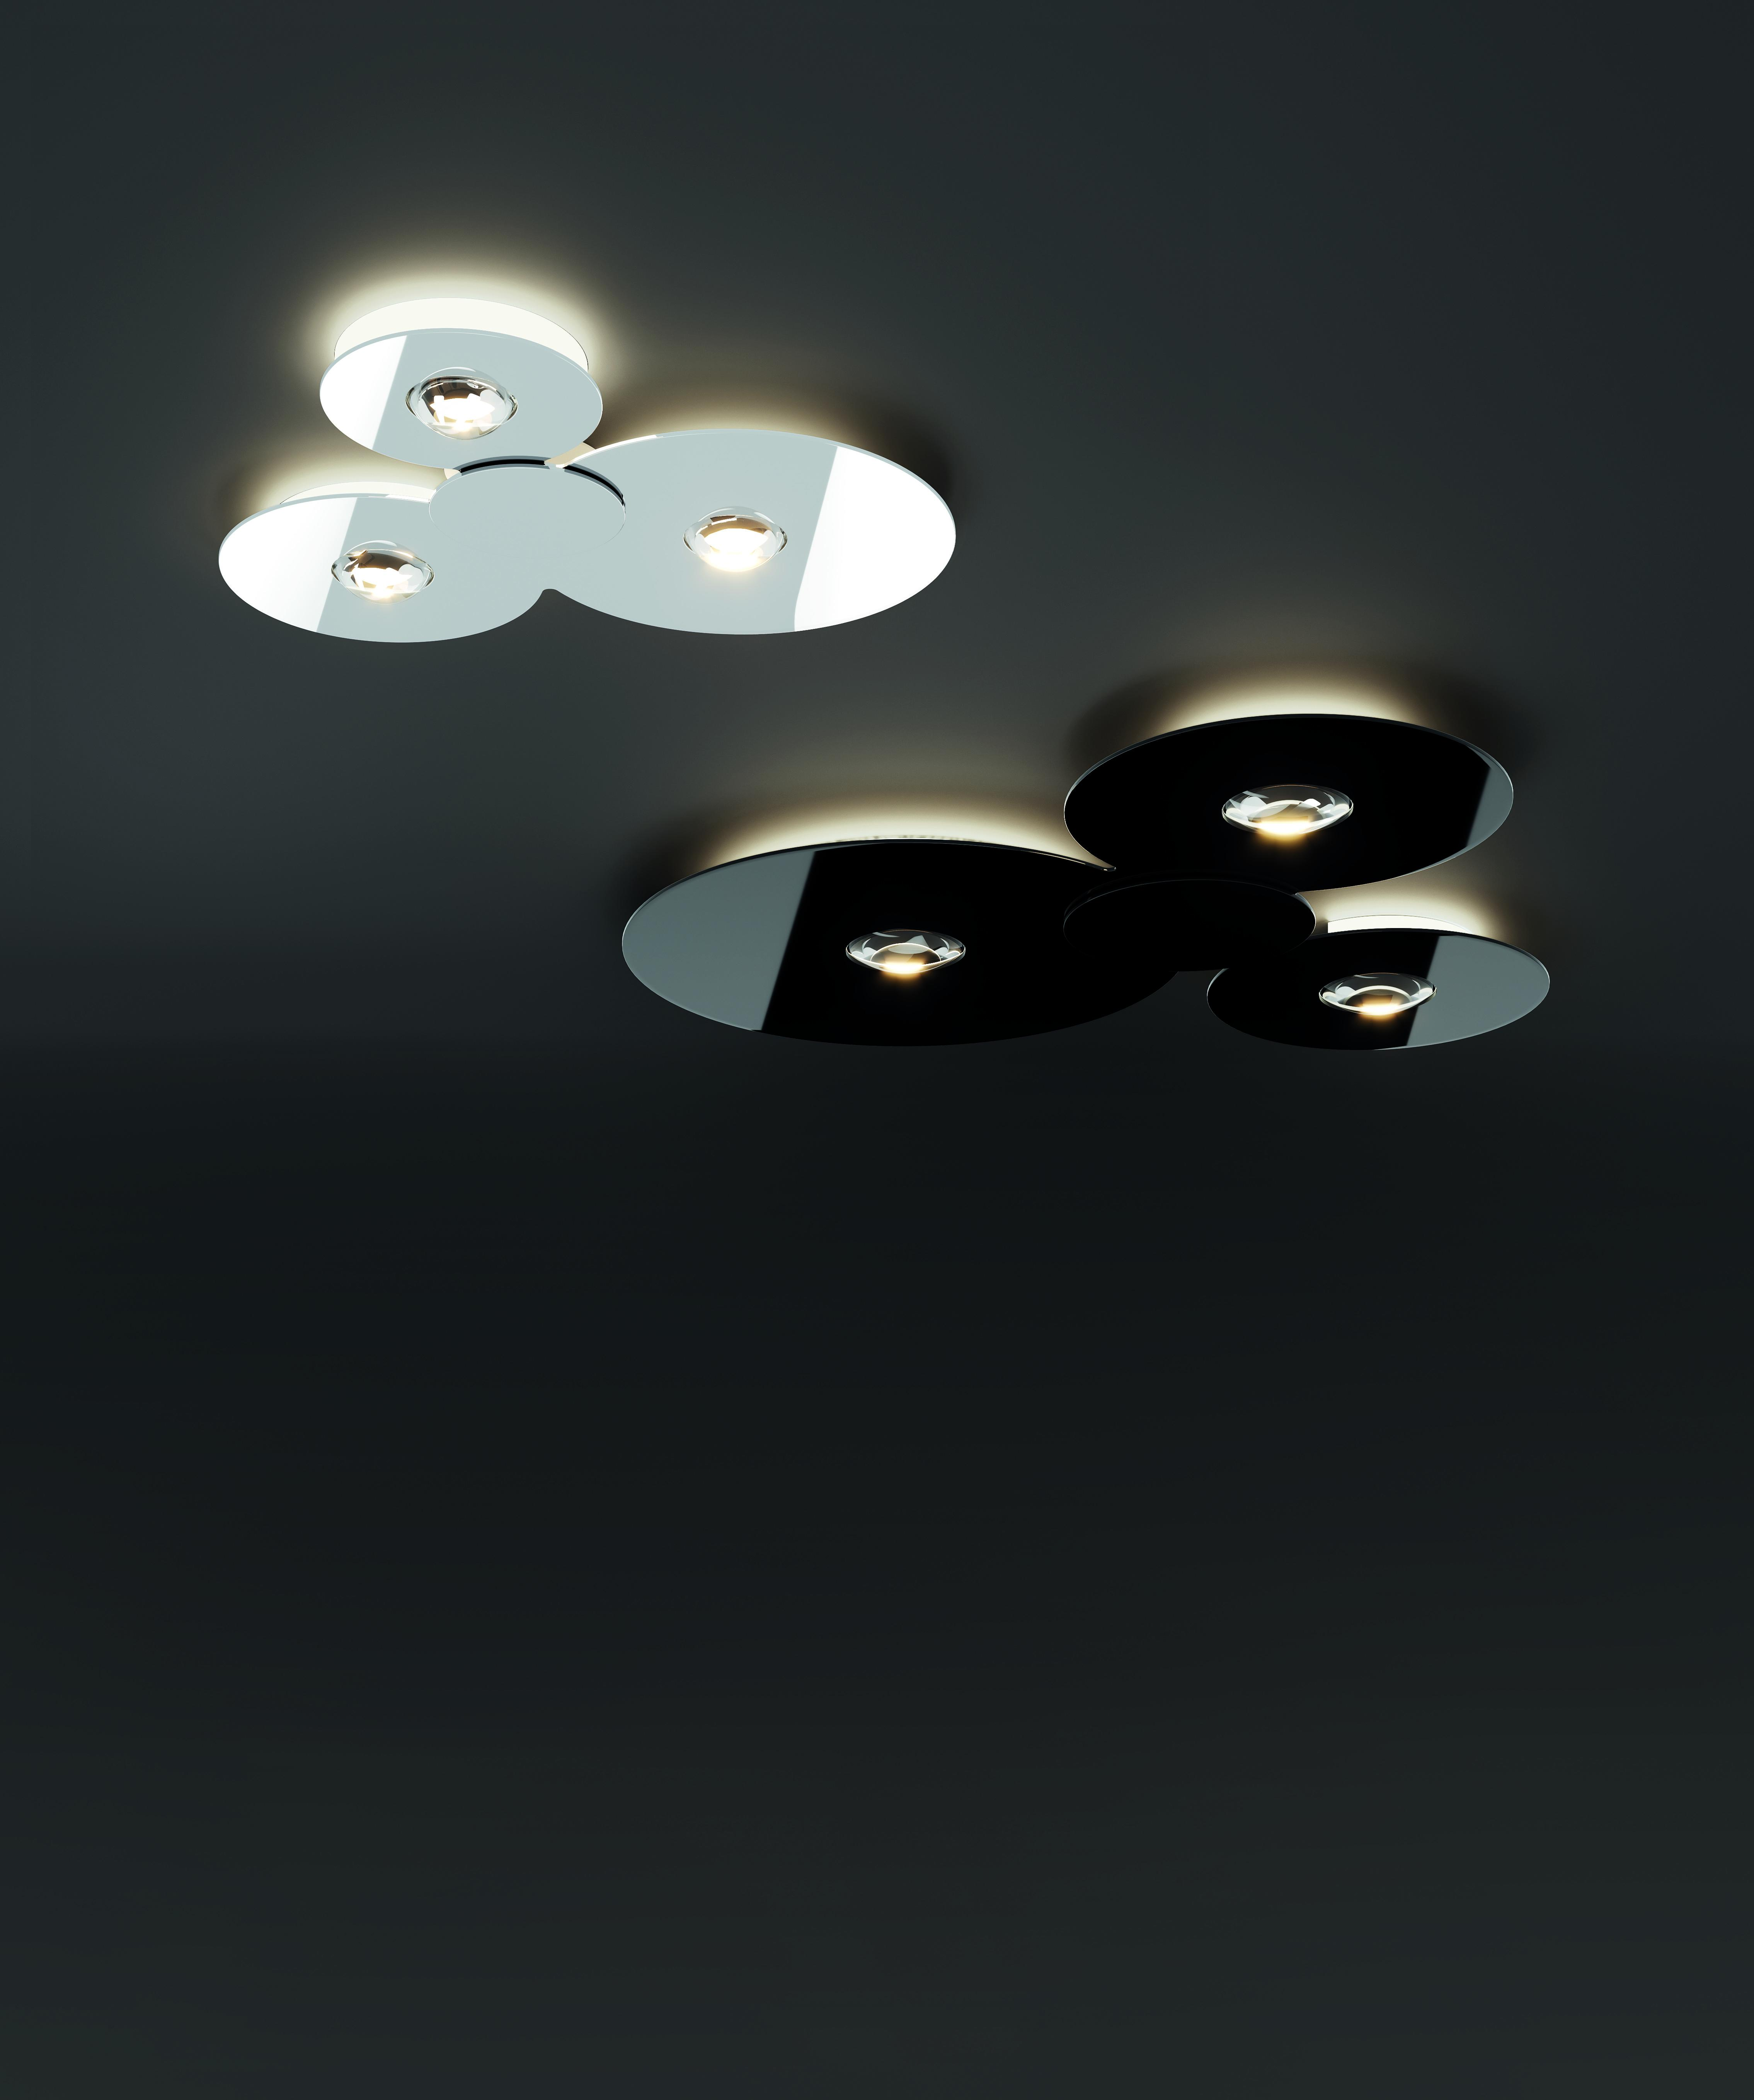 Ceiling Lights for Interior Designers